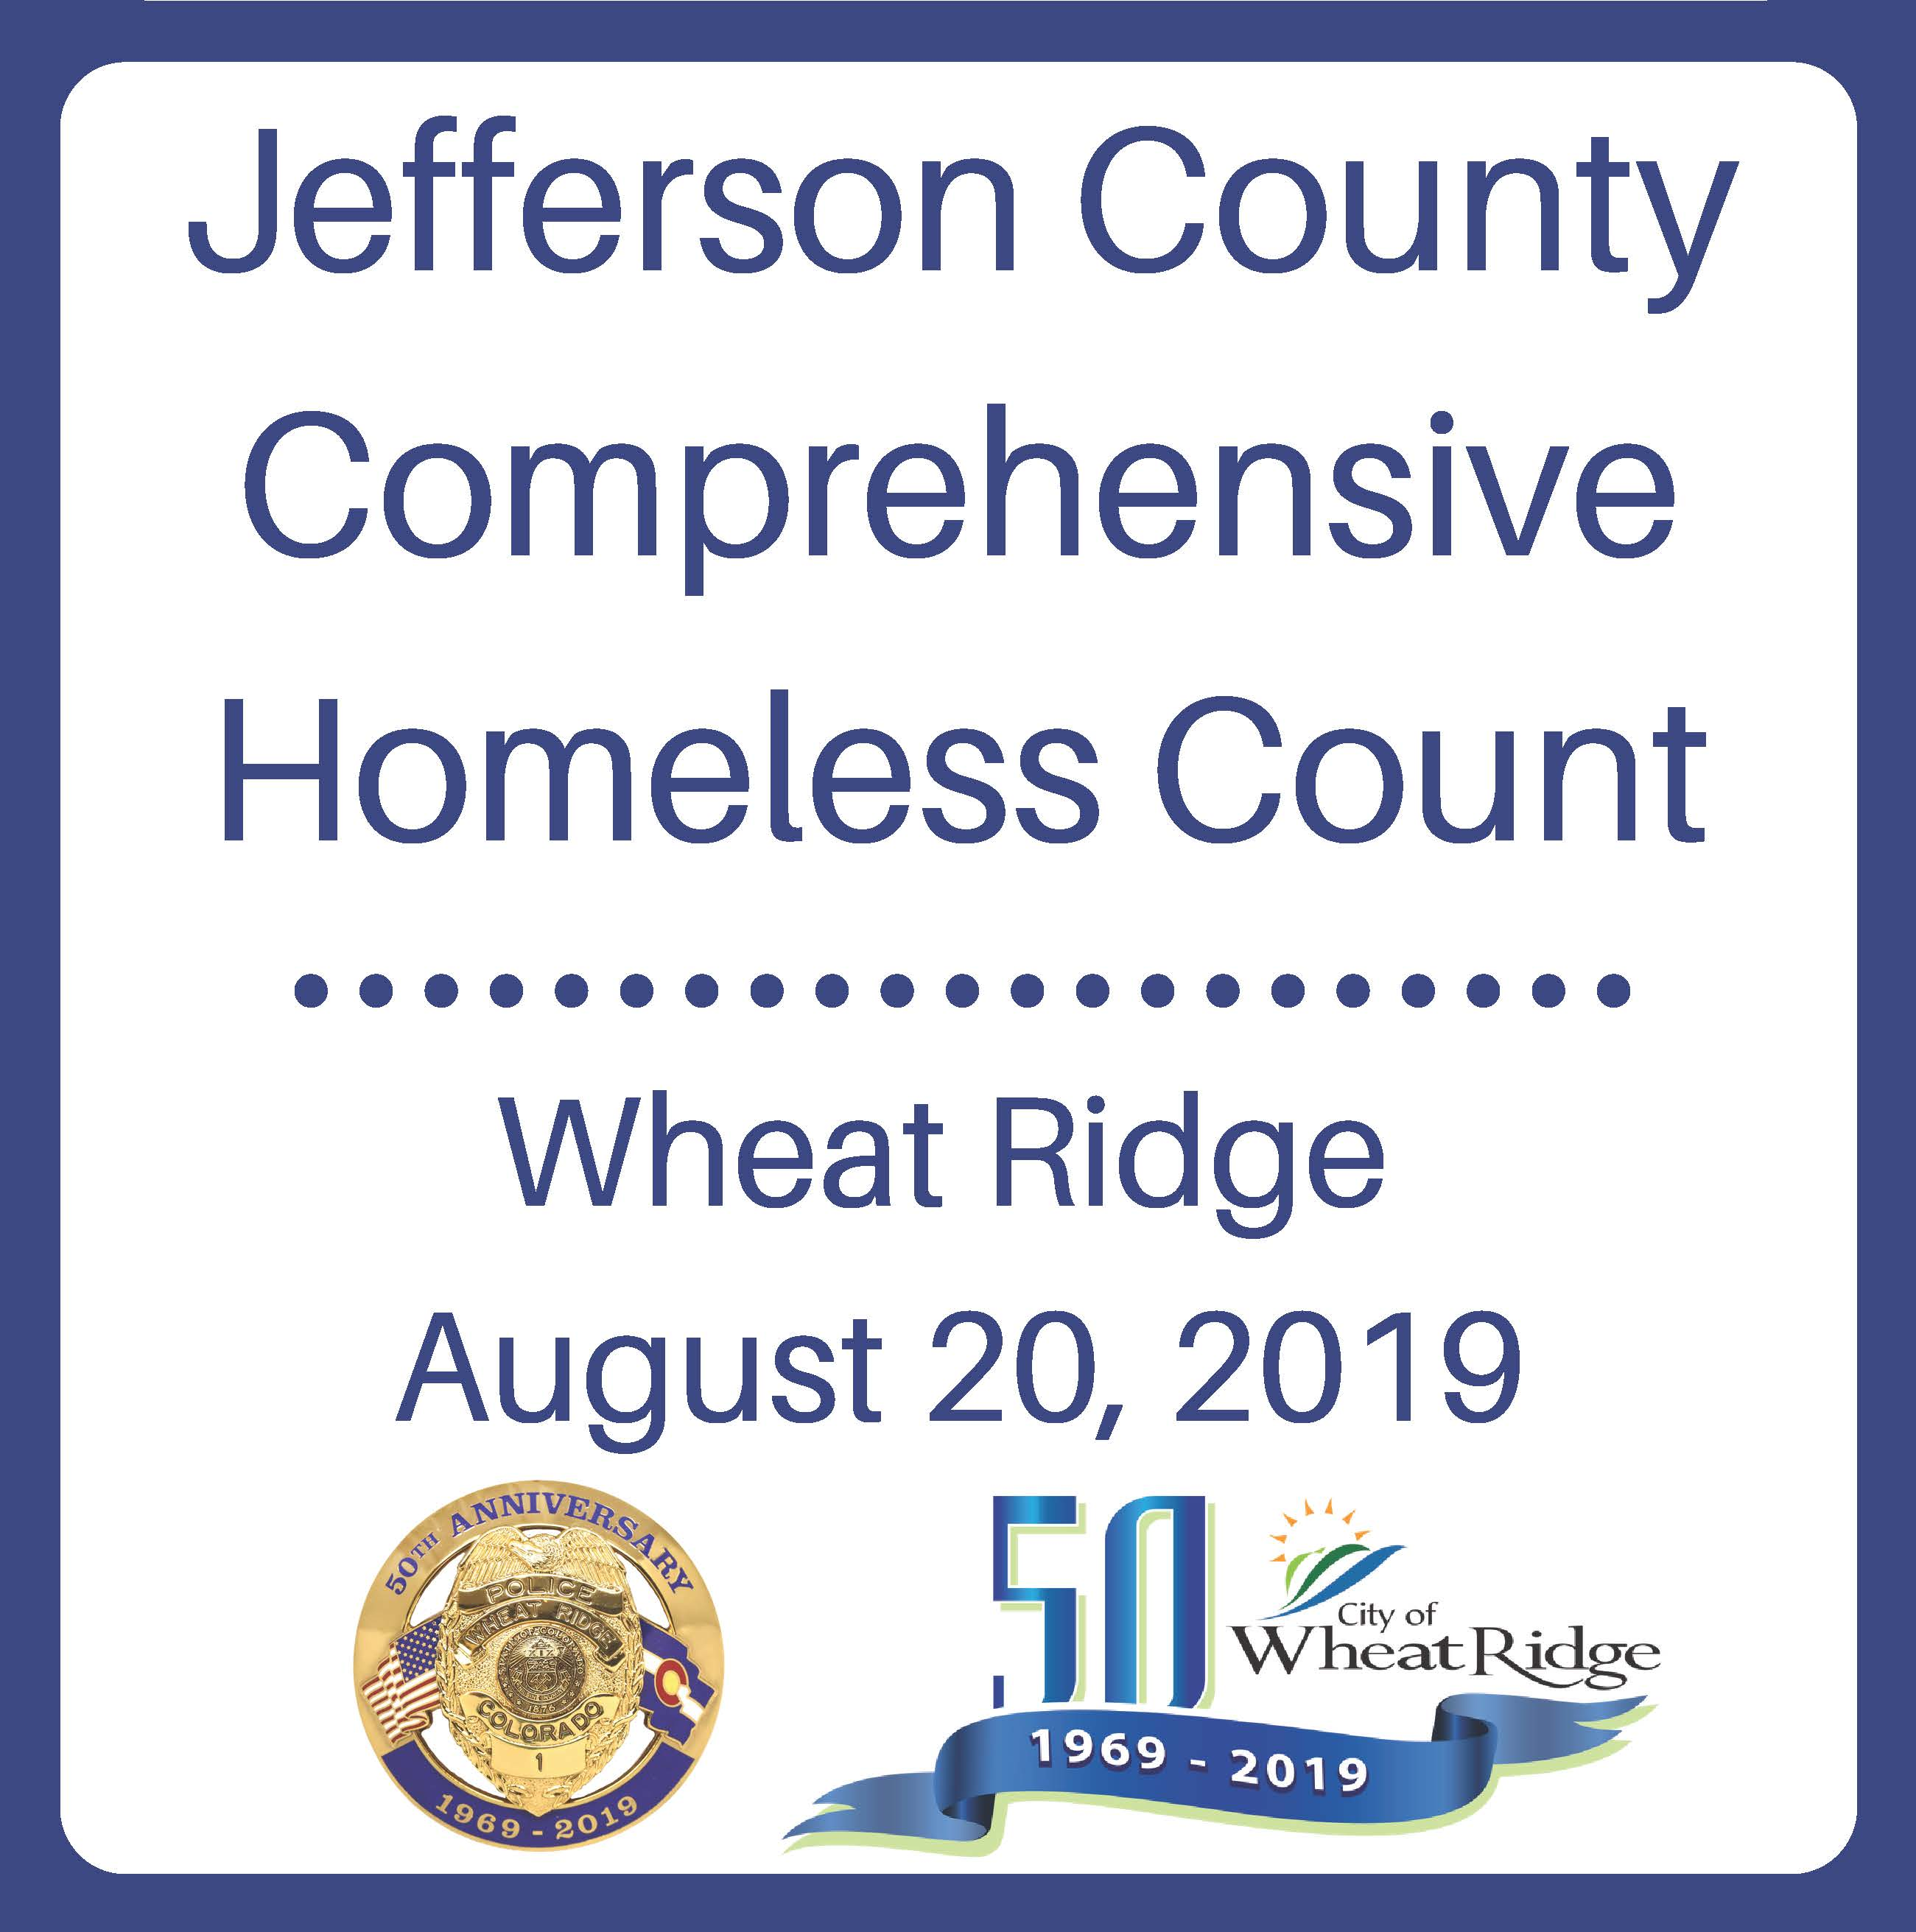 Jefferson County Comprehensive Homeless Count